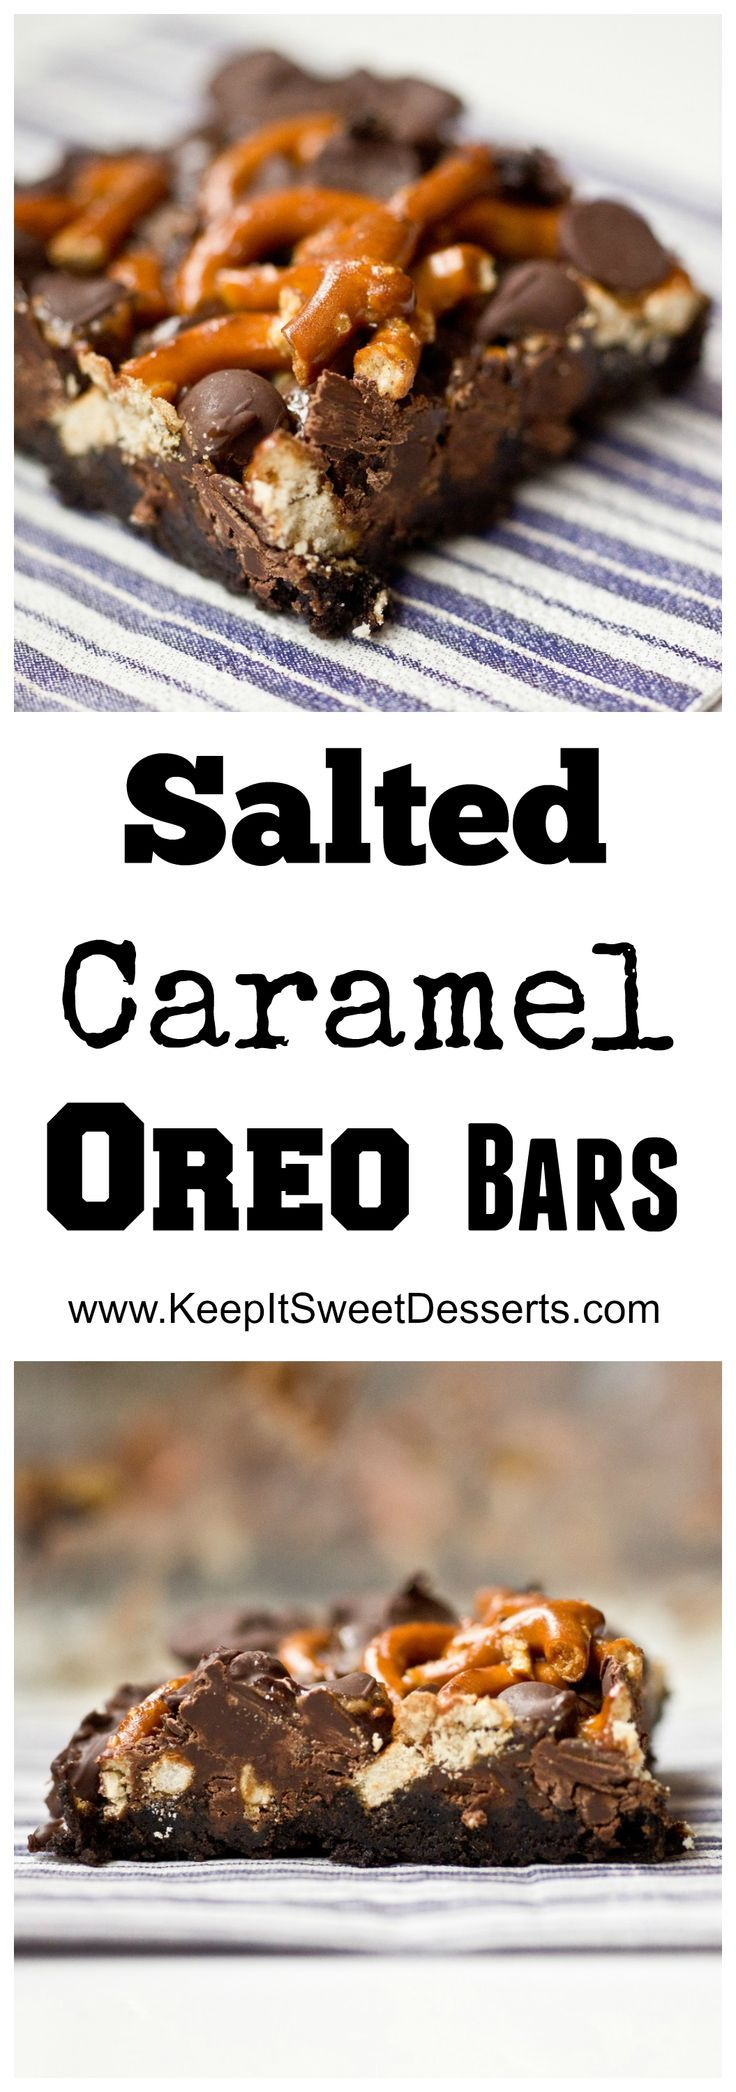 Salted Caramel Oreo Bars that are SUPER easy to make!!